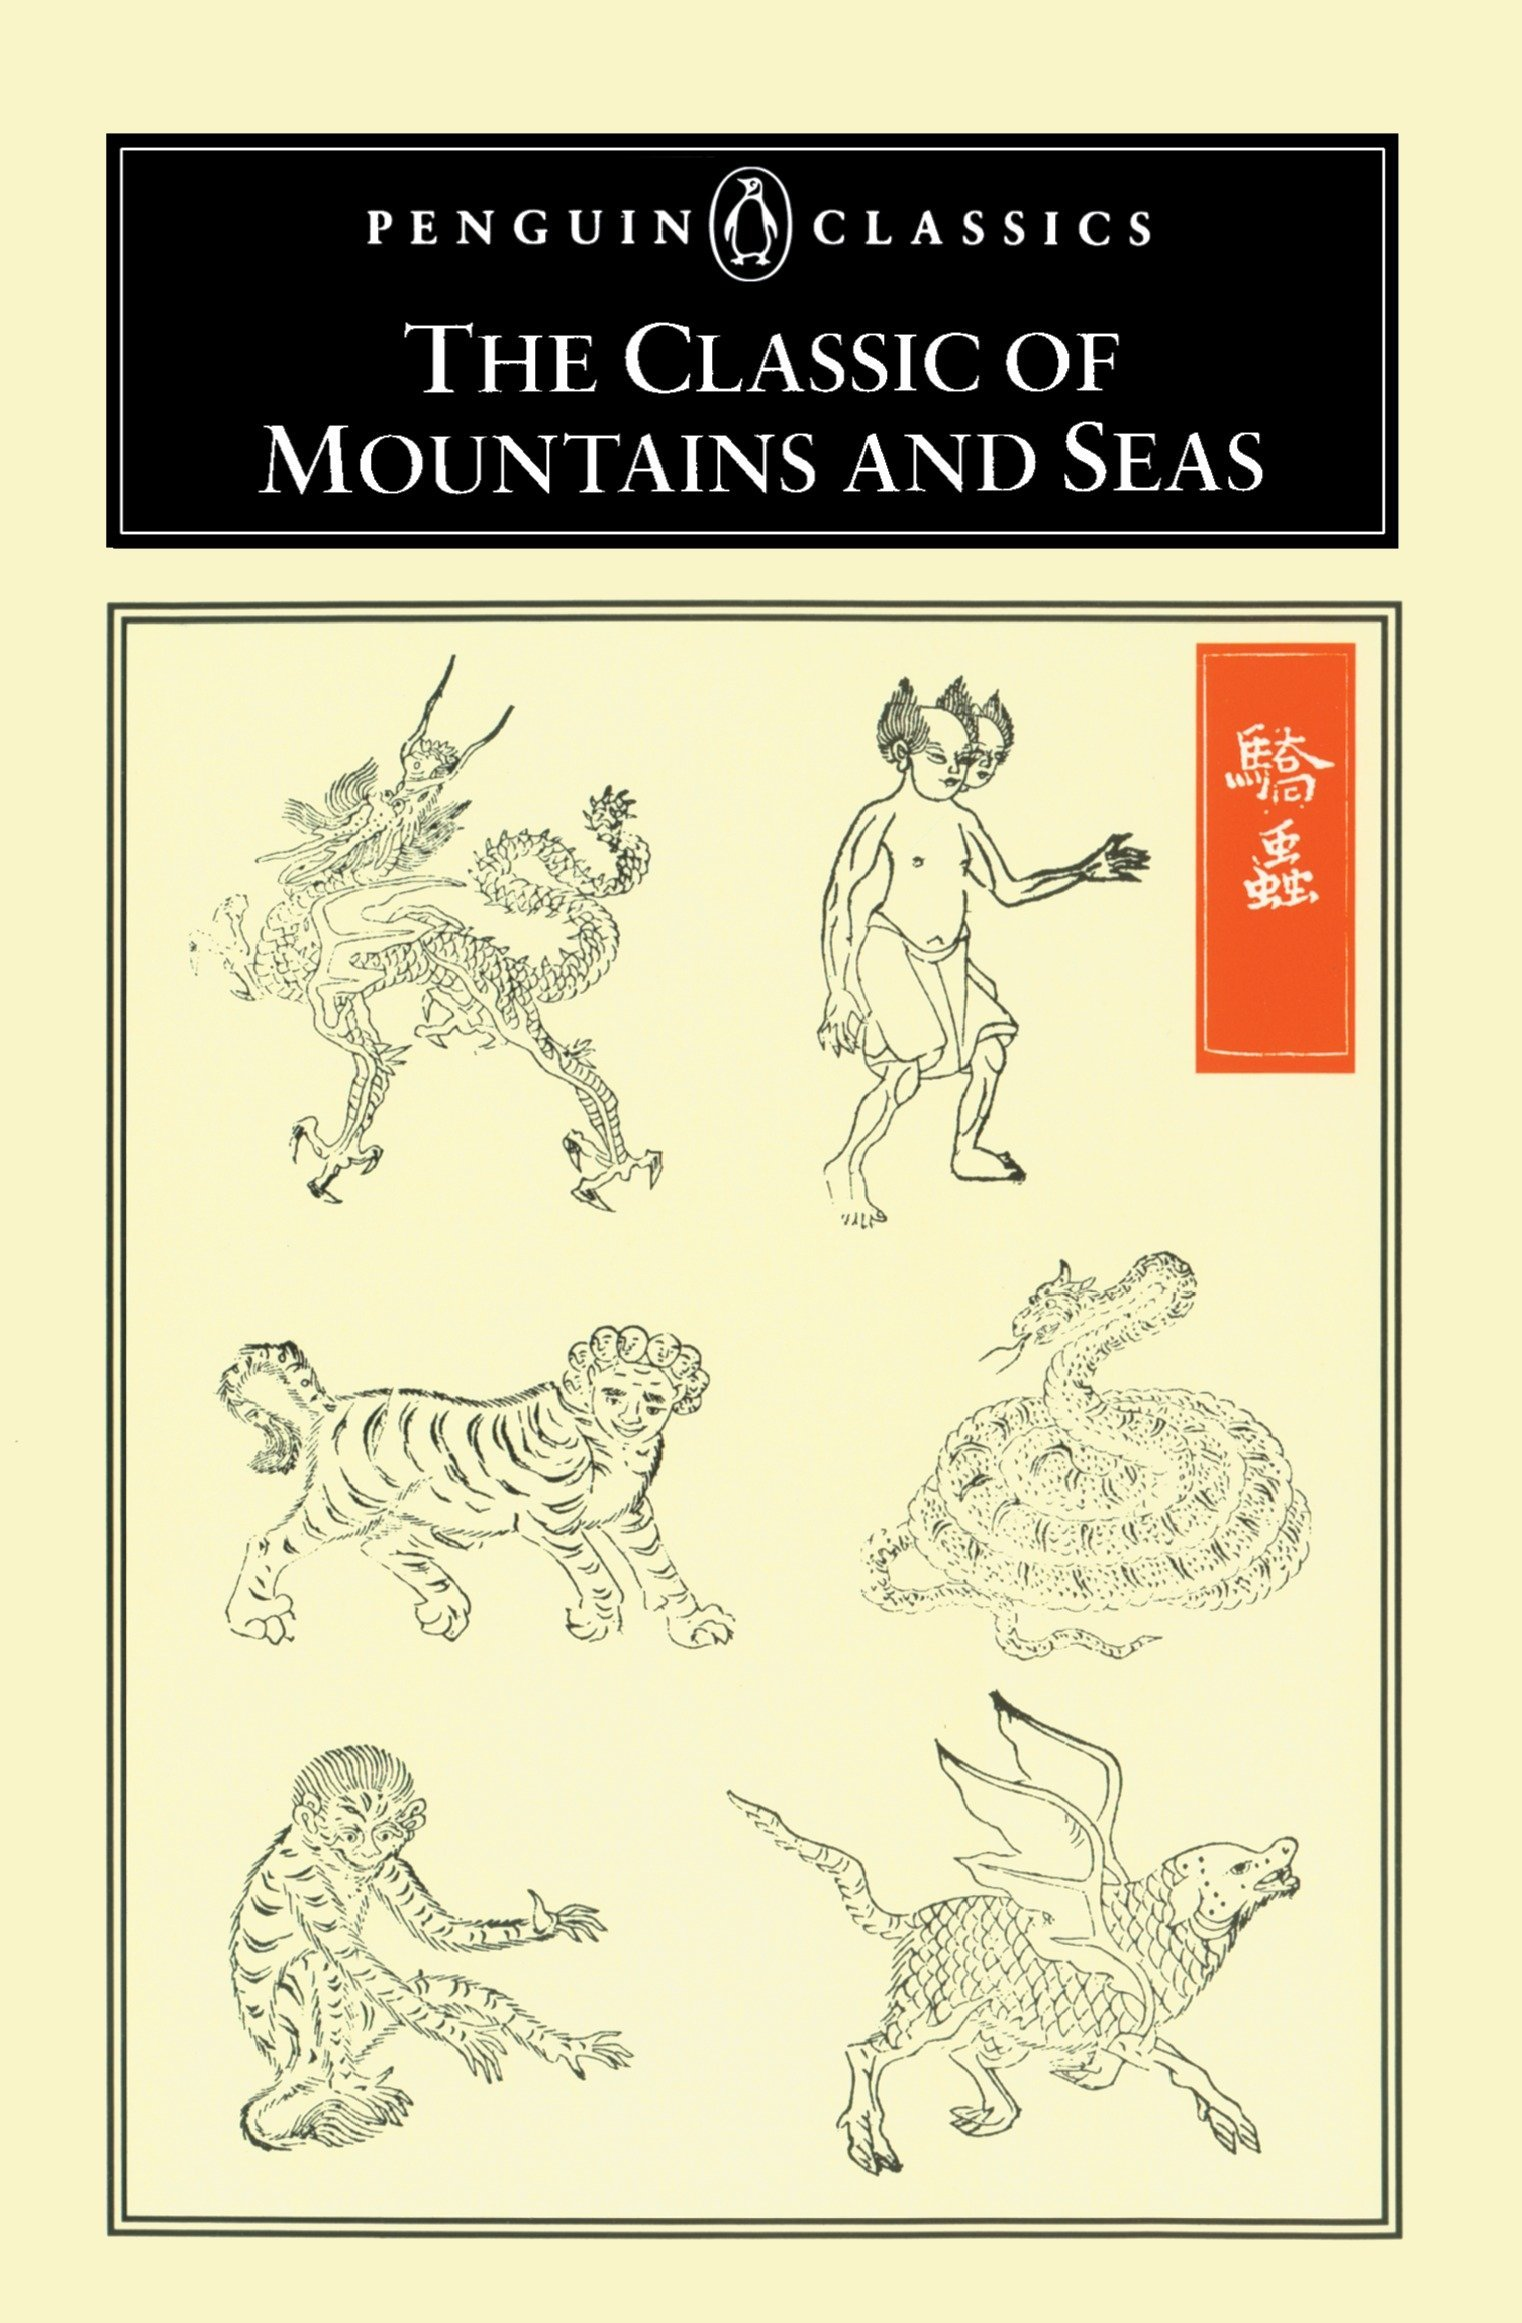 The Classic of Montains and Seas